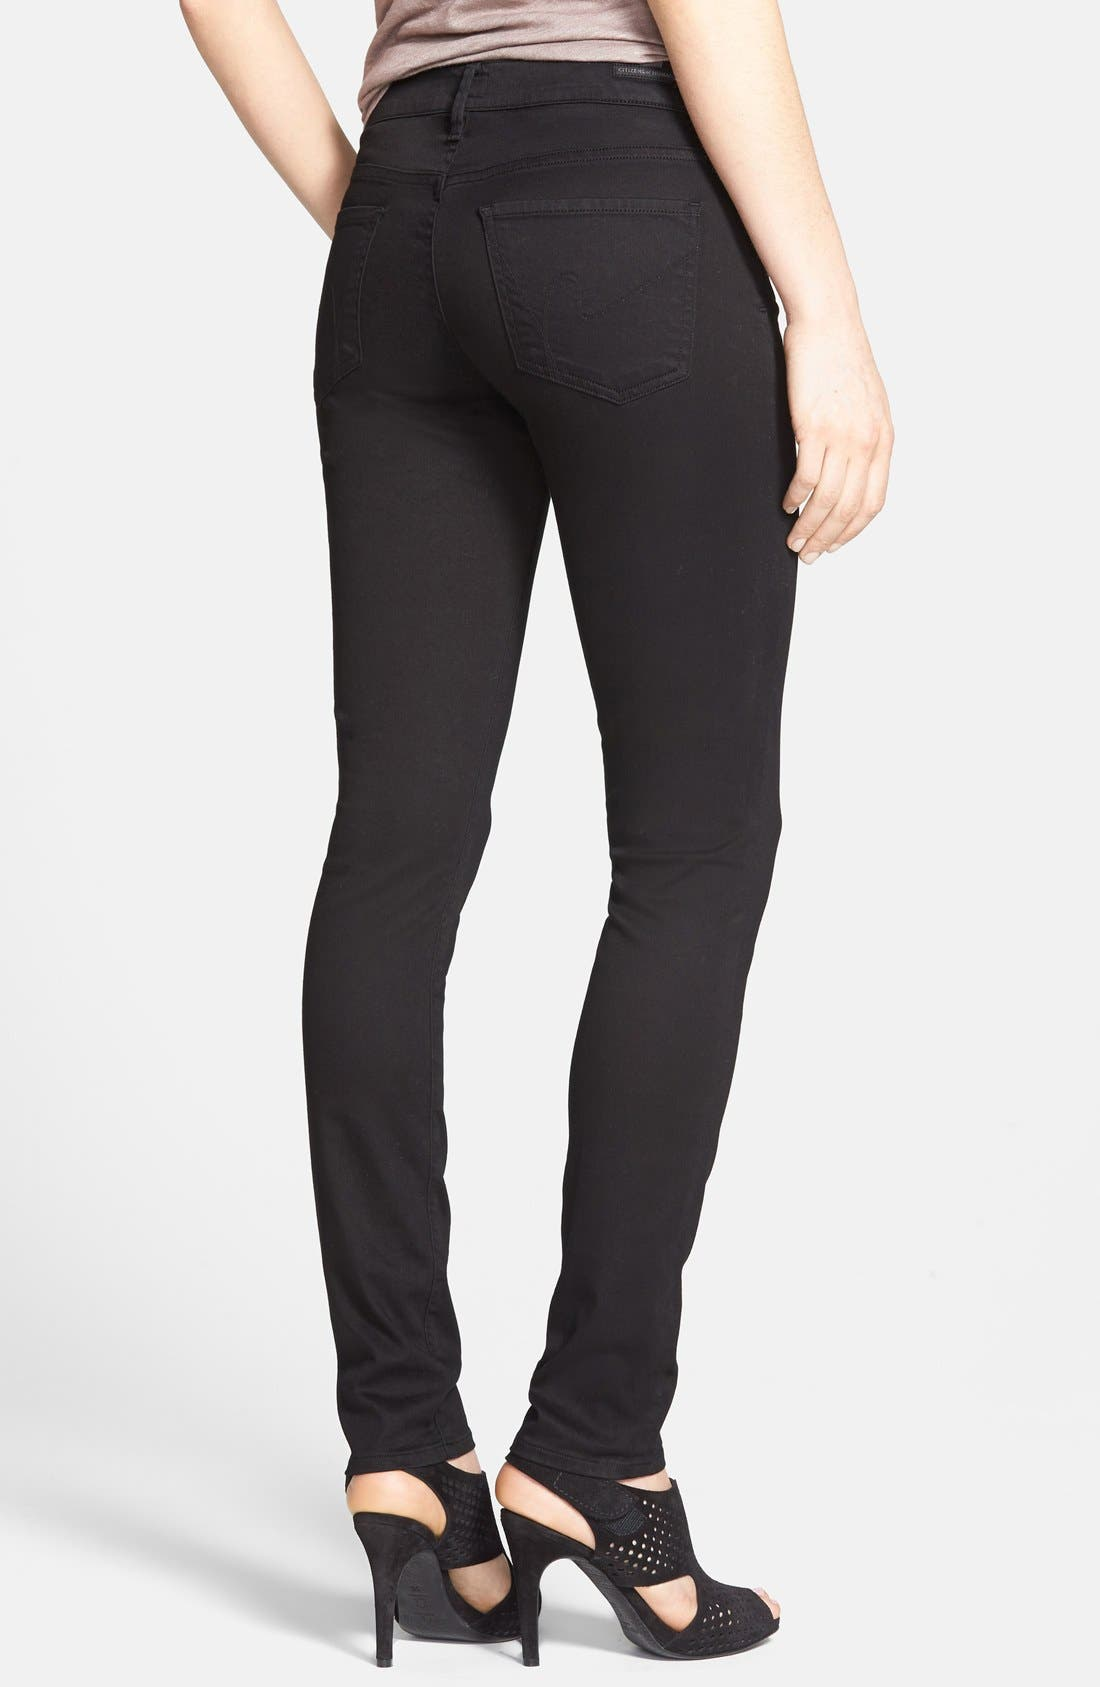 'Avedon' Ultra Skinny Jeans,                             Alternate thumbnail 4, color,                             001